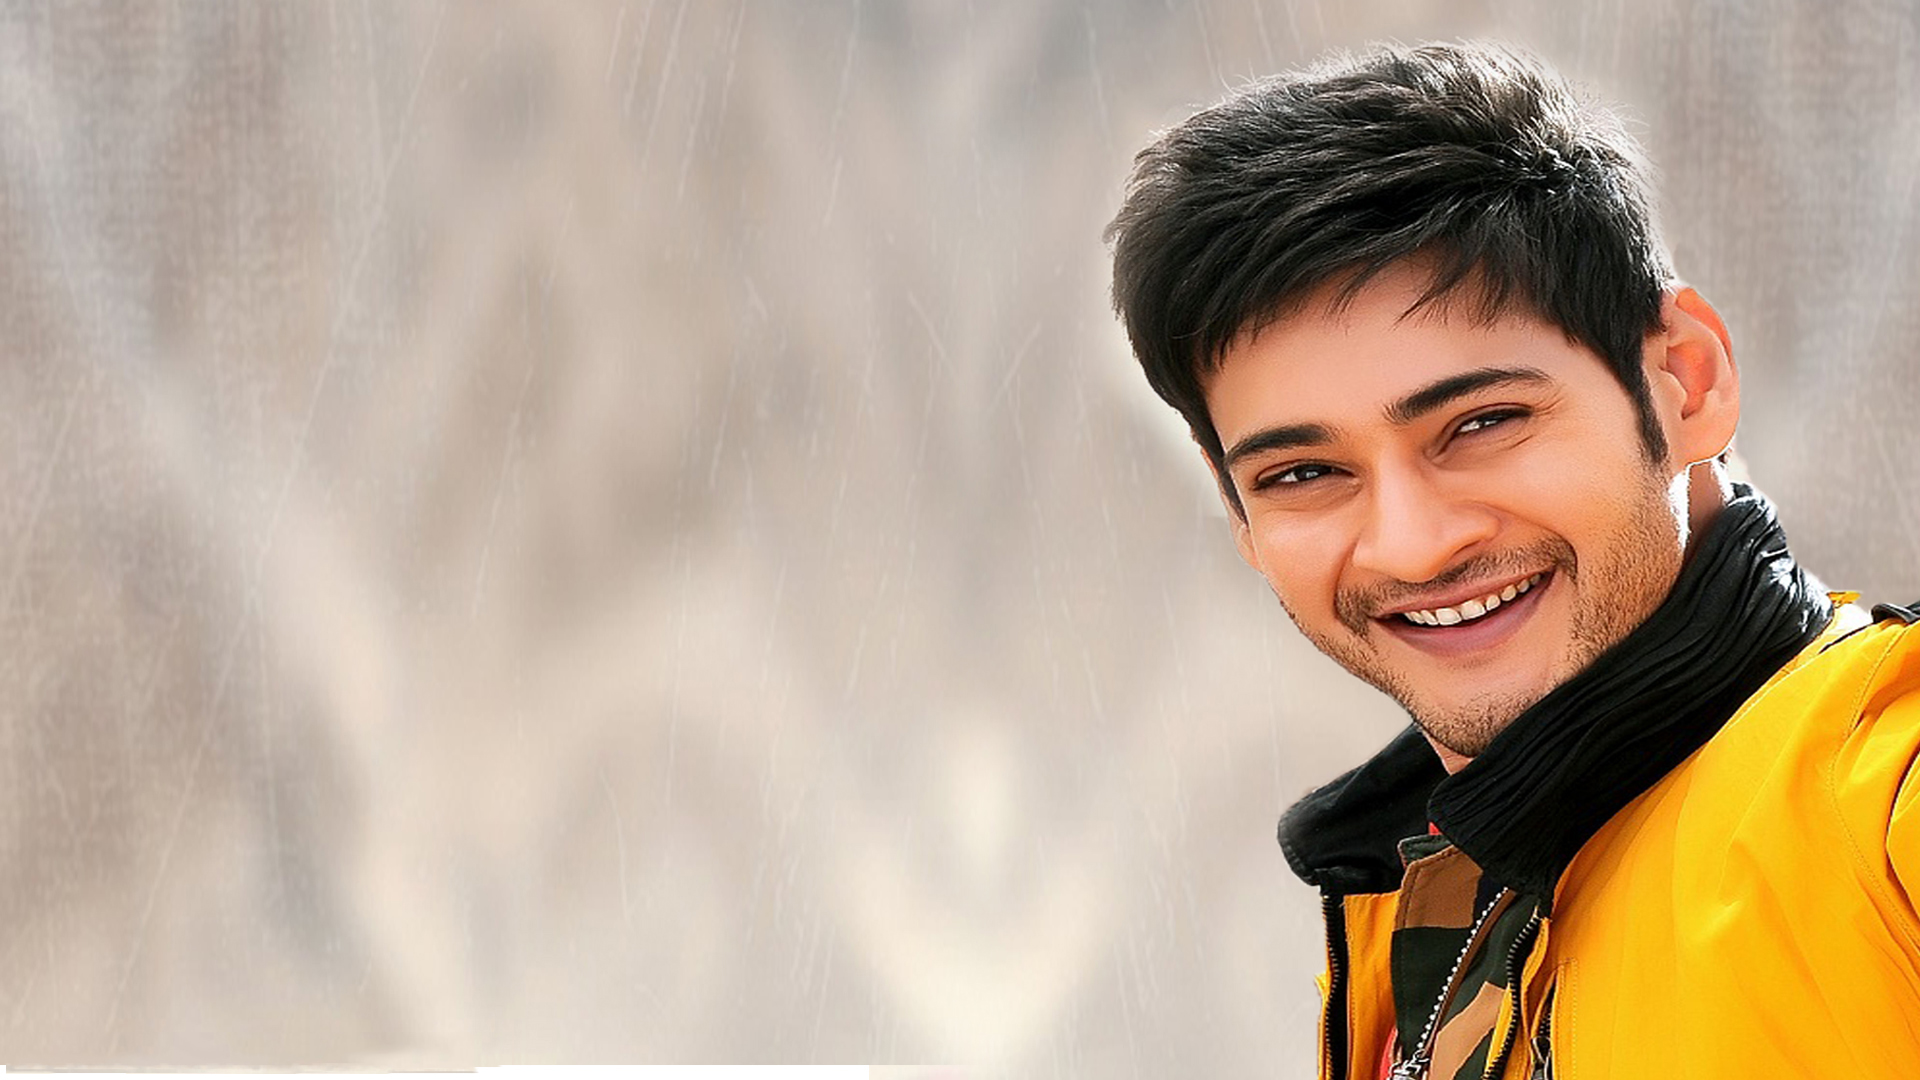 amazing mahesh babu beautiful smile look background free hd desktop mobile pictures